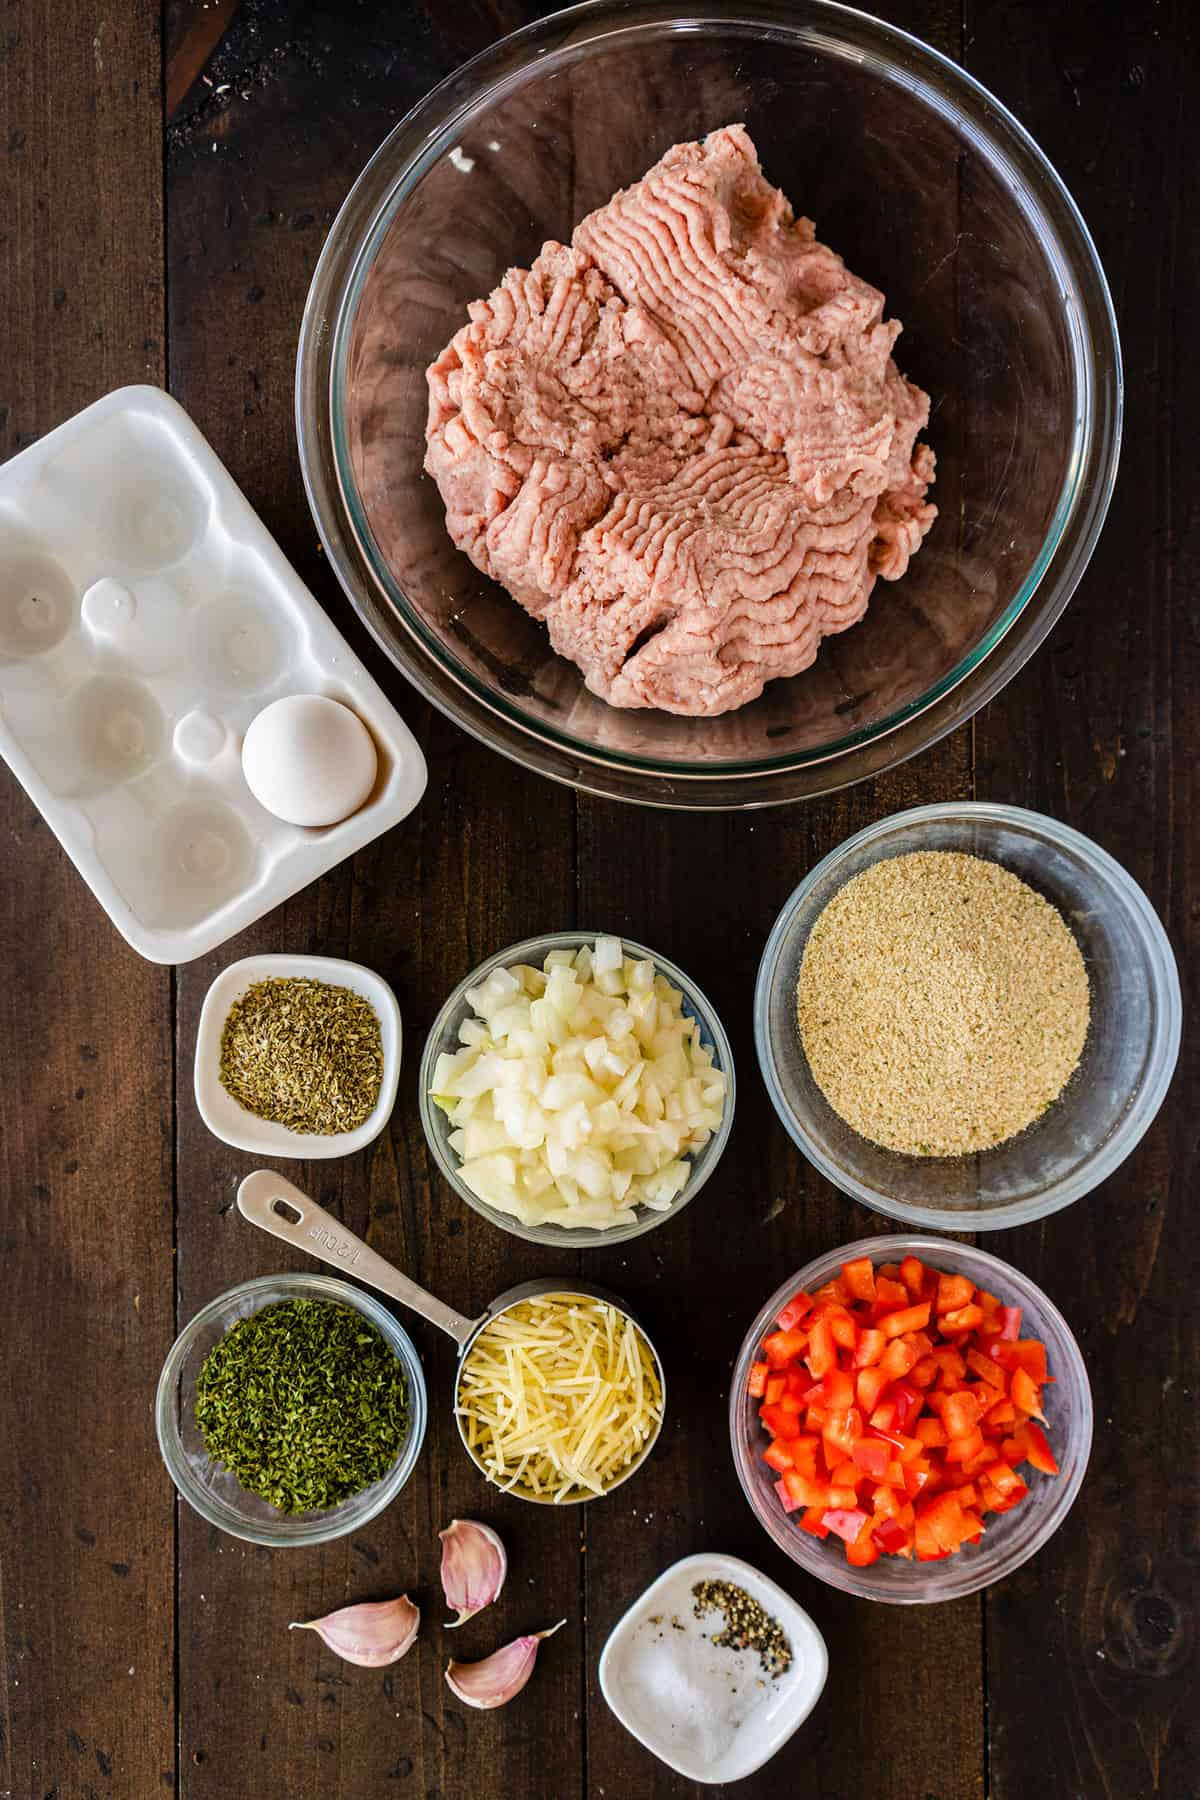 Component ingredients of a turkey meatloaf, all portioned out in bowls.